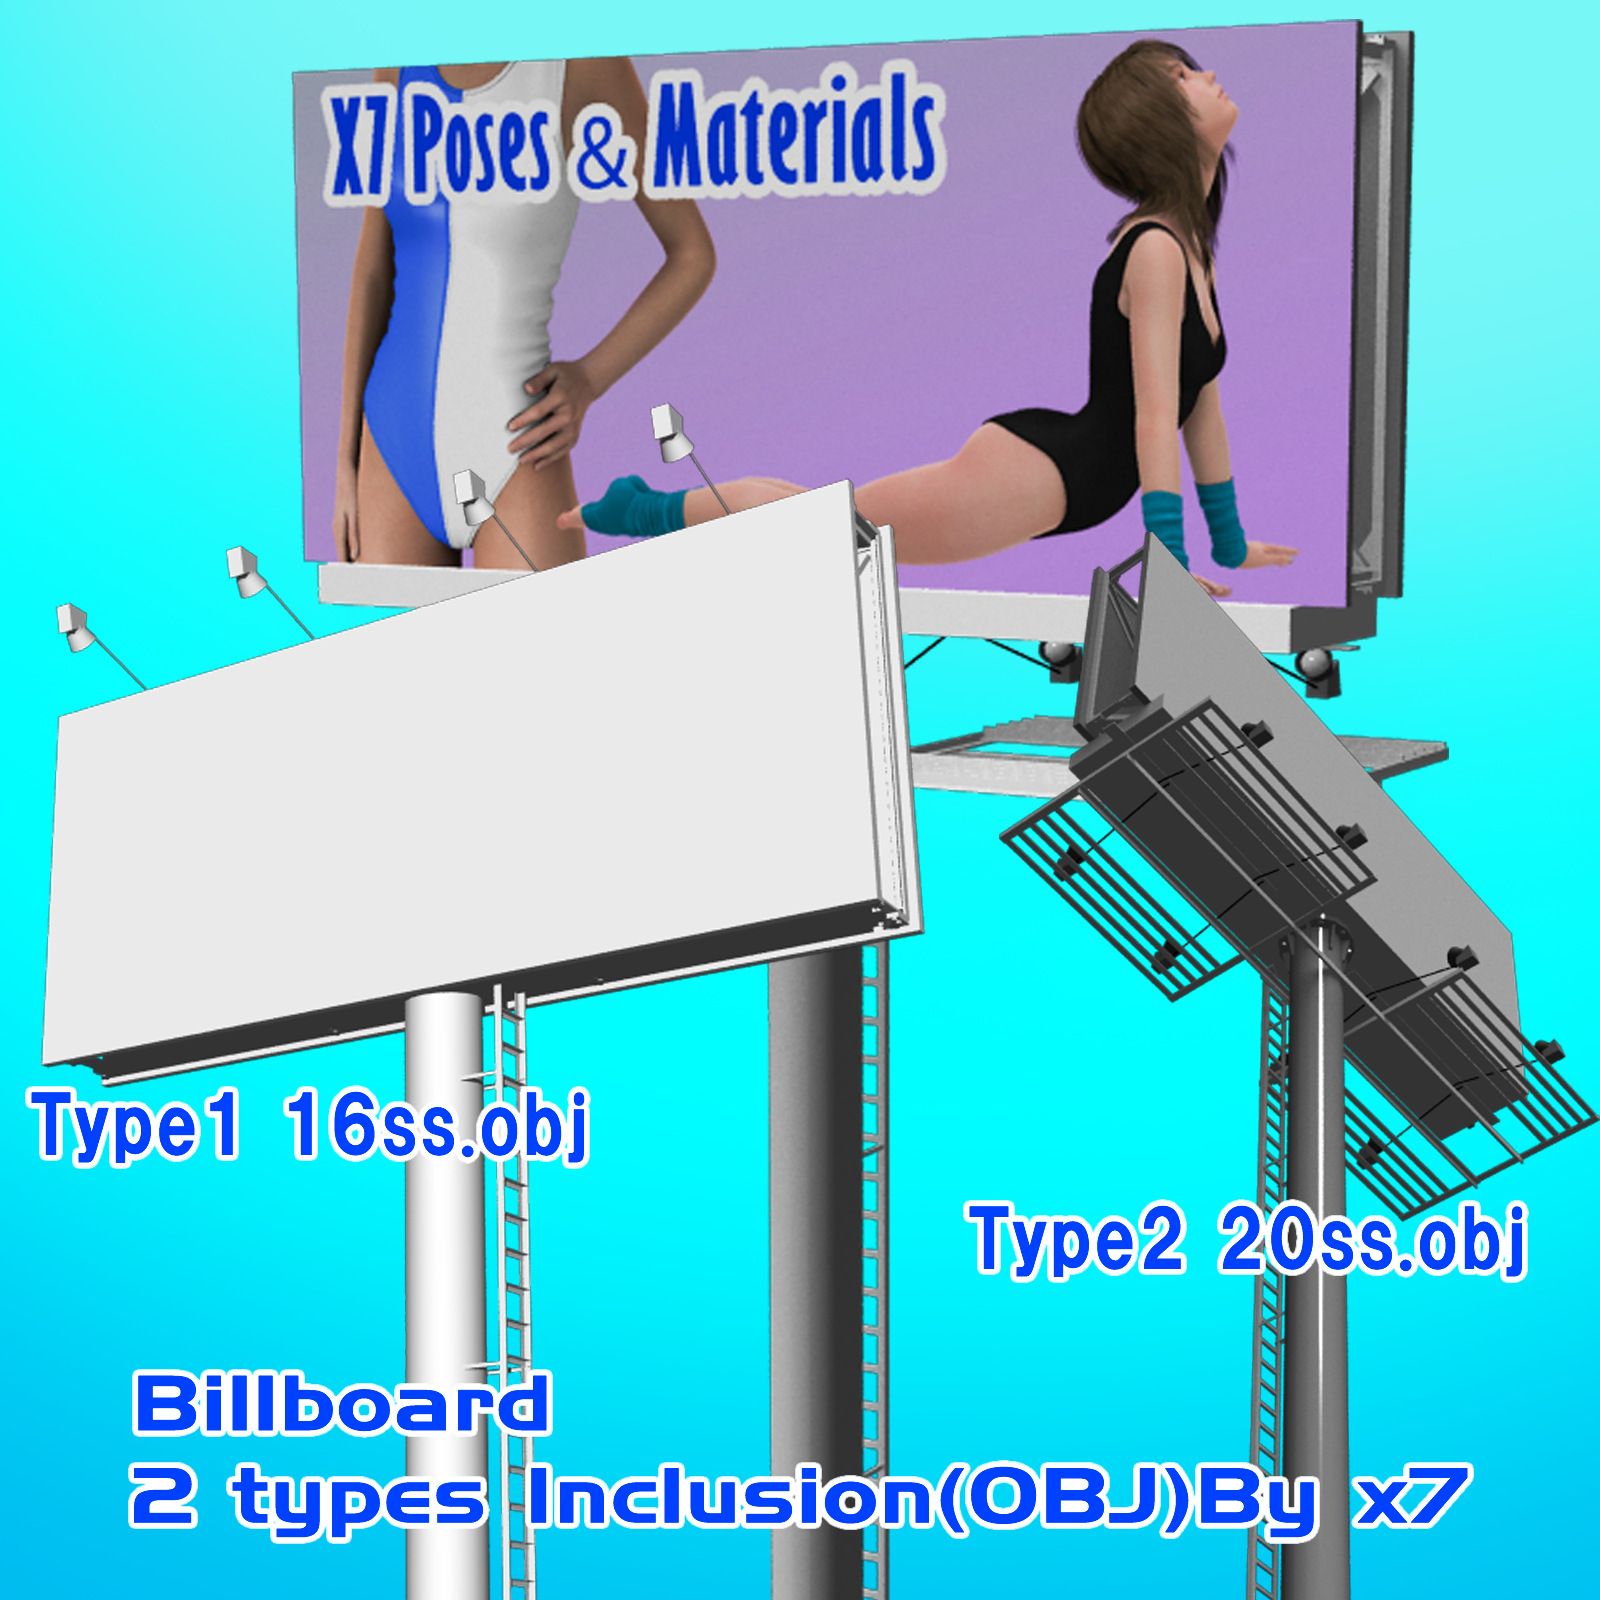 Billboard 2 types Inclusion(OBJ)By x7 - Extended License